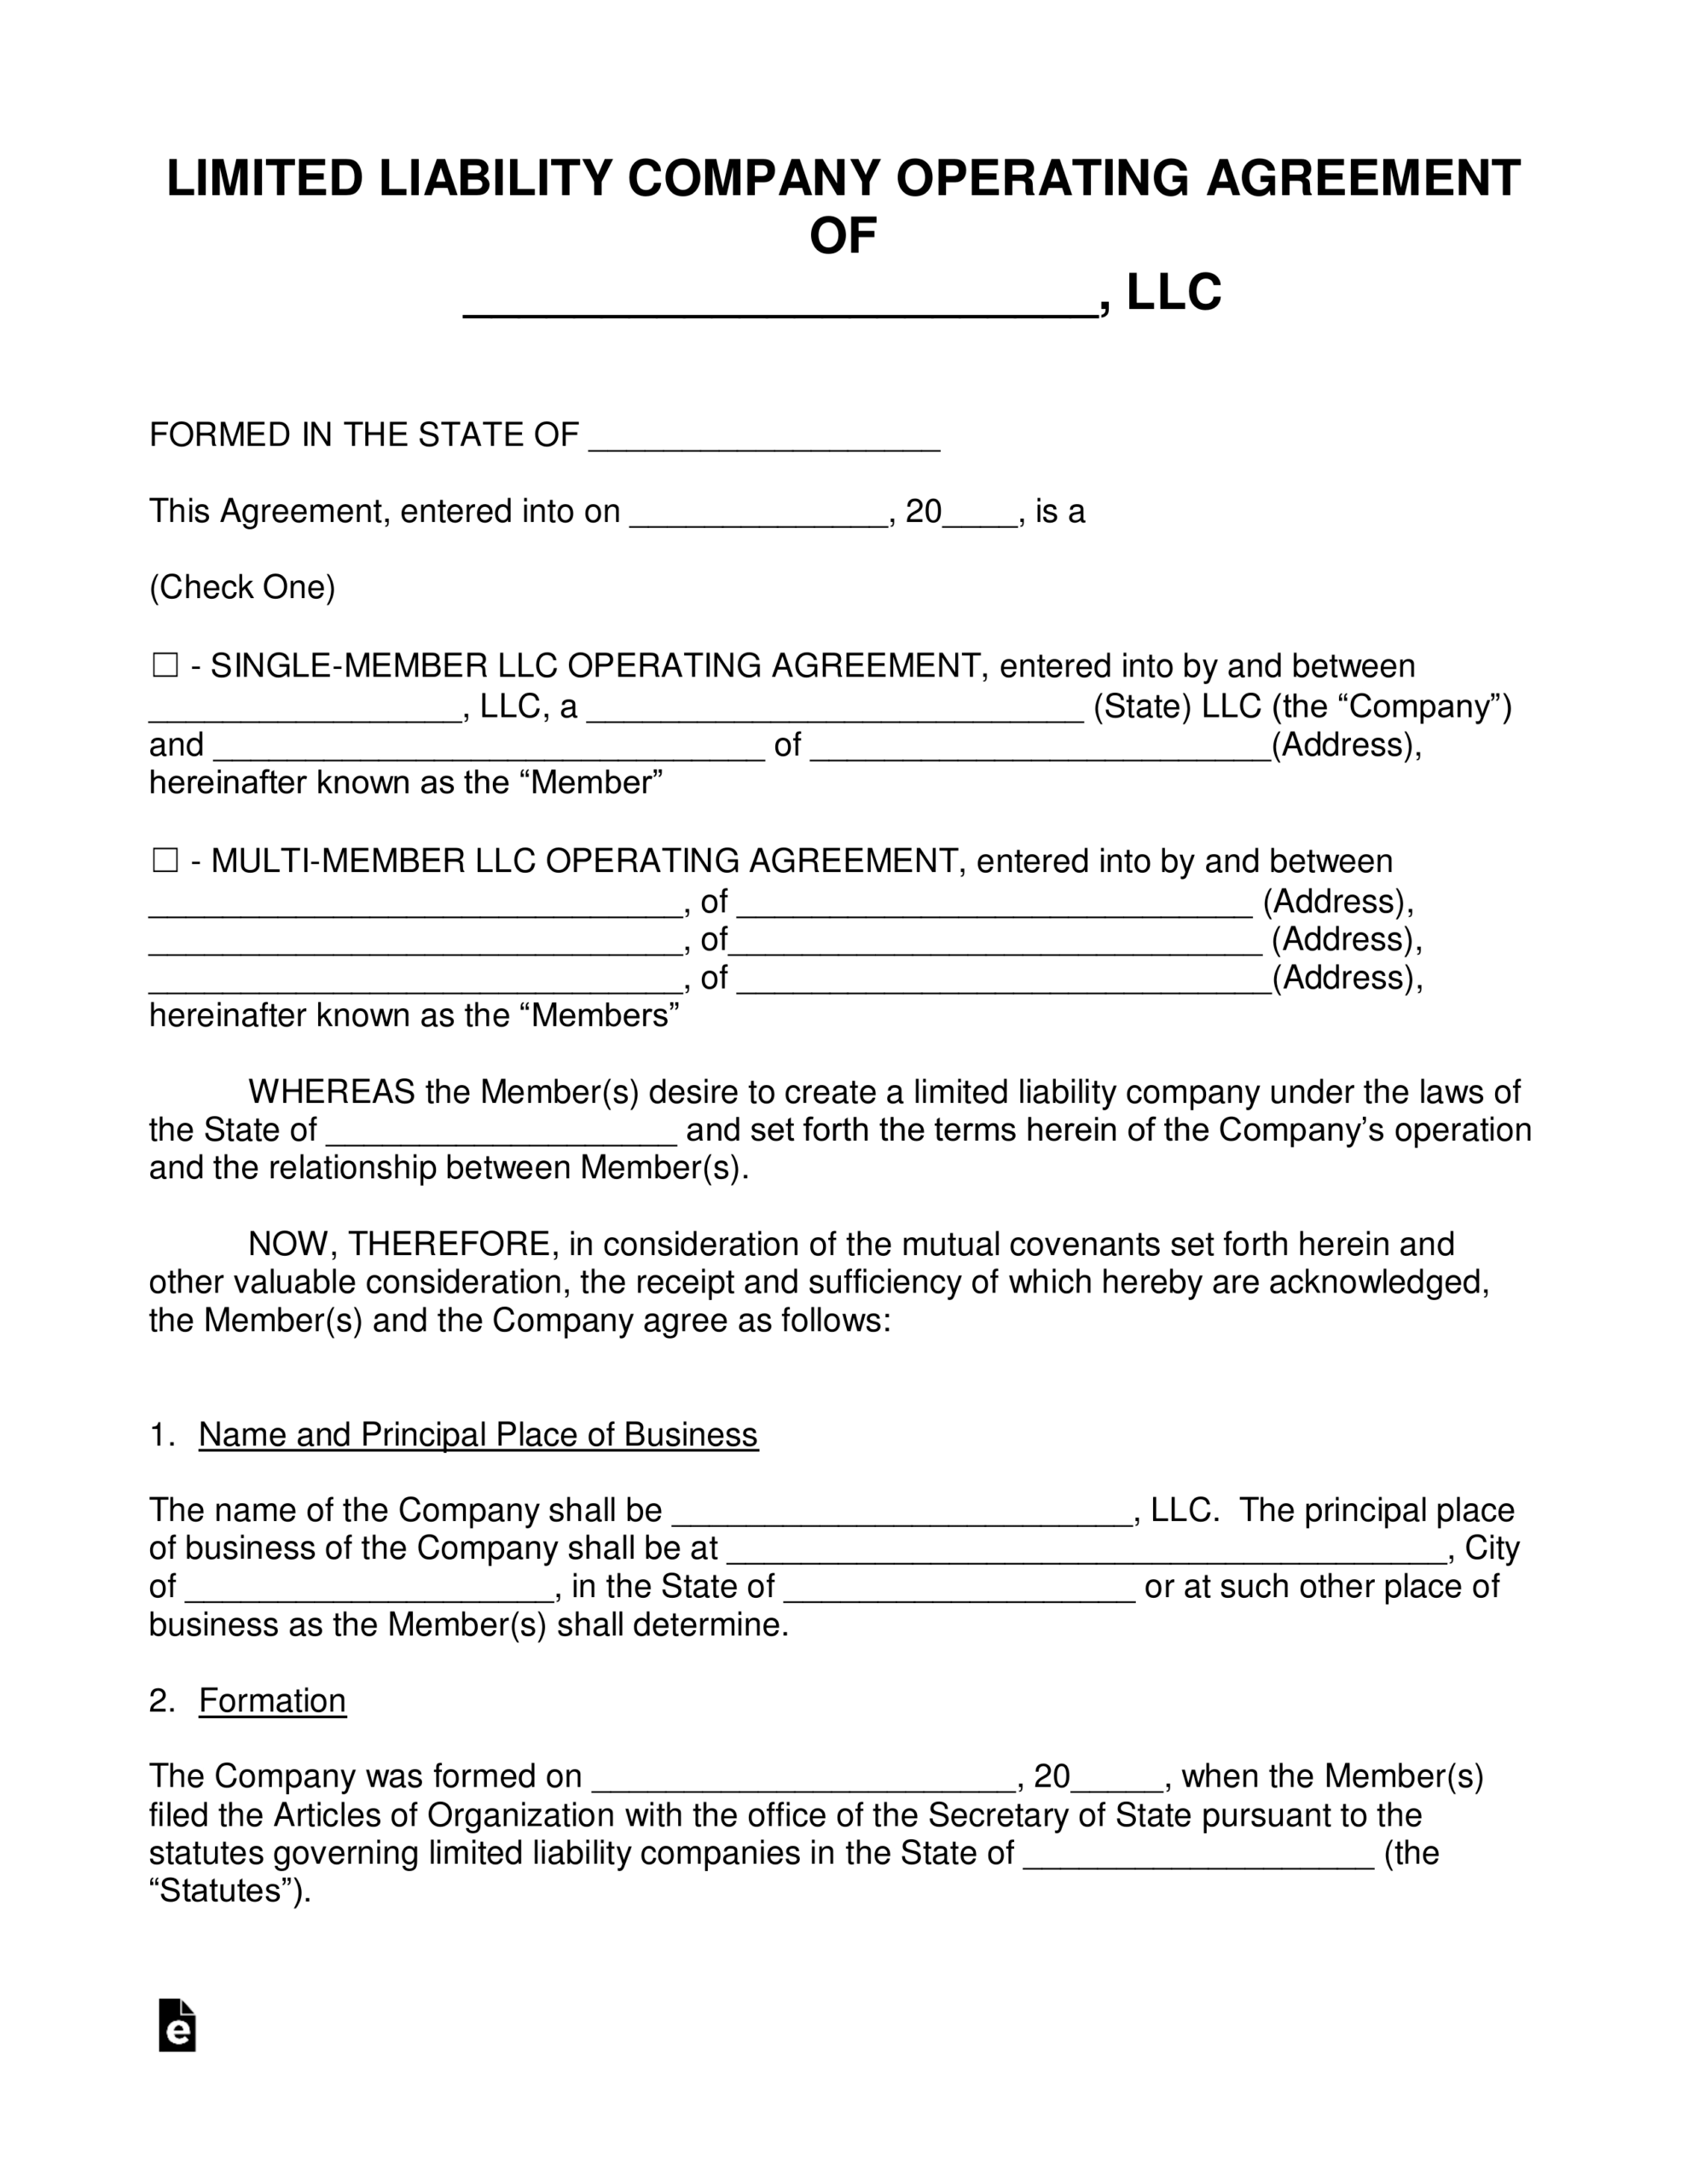 Free Llc Operating Agreement Templates - Pdf | Word | Eforms In Articles Of Organization Llc Template